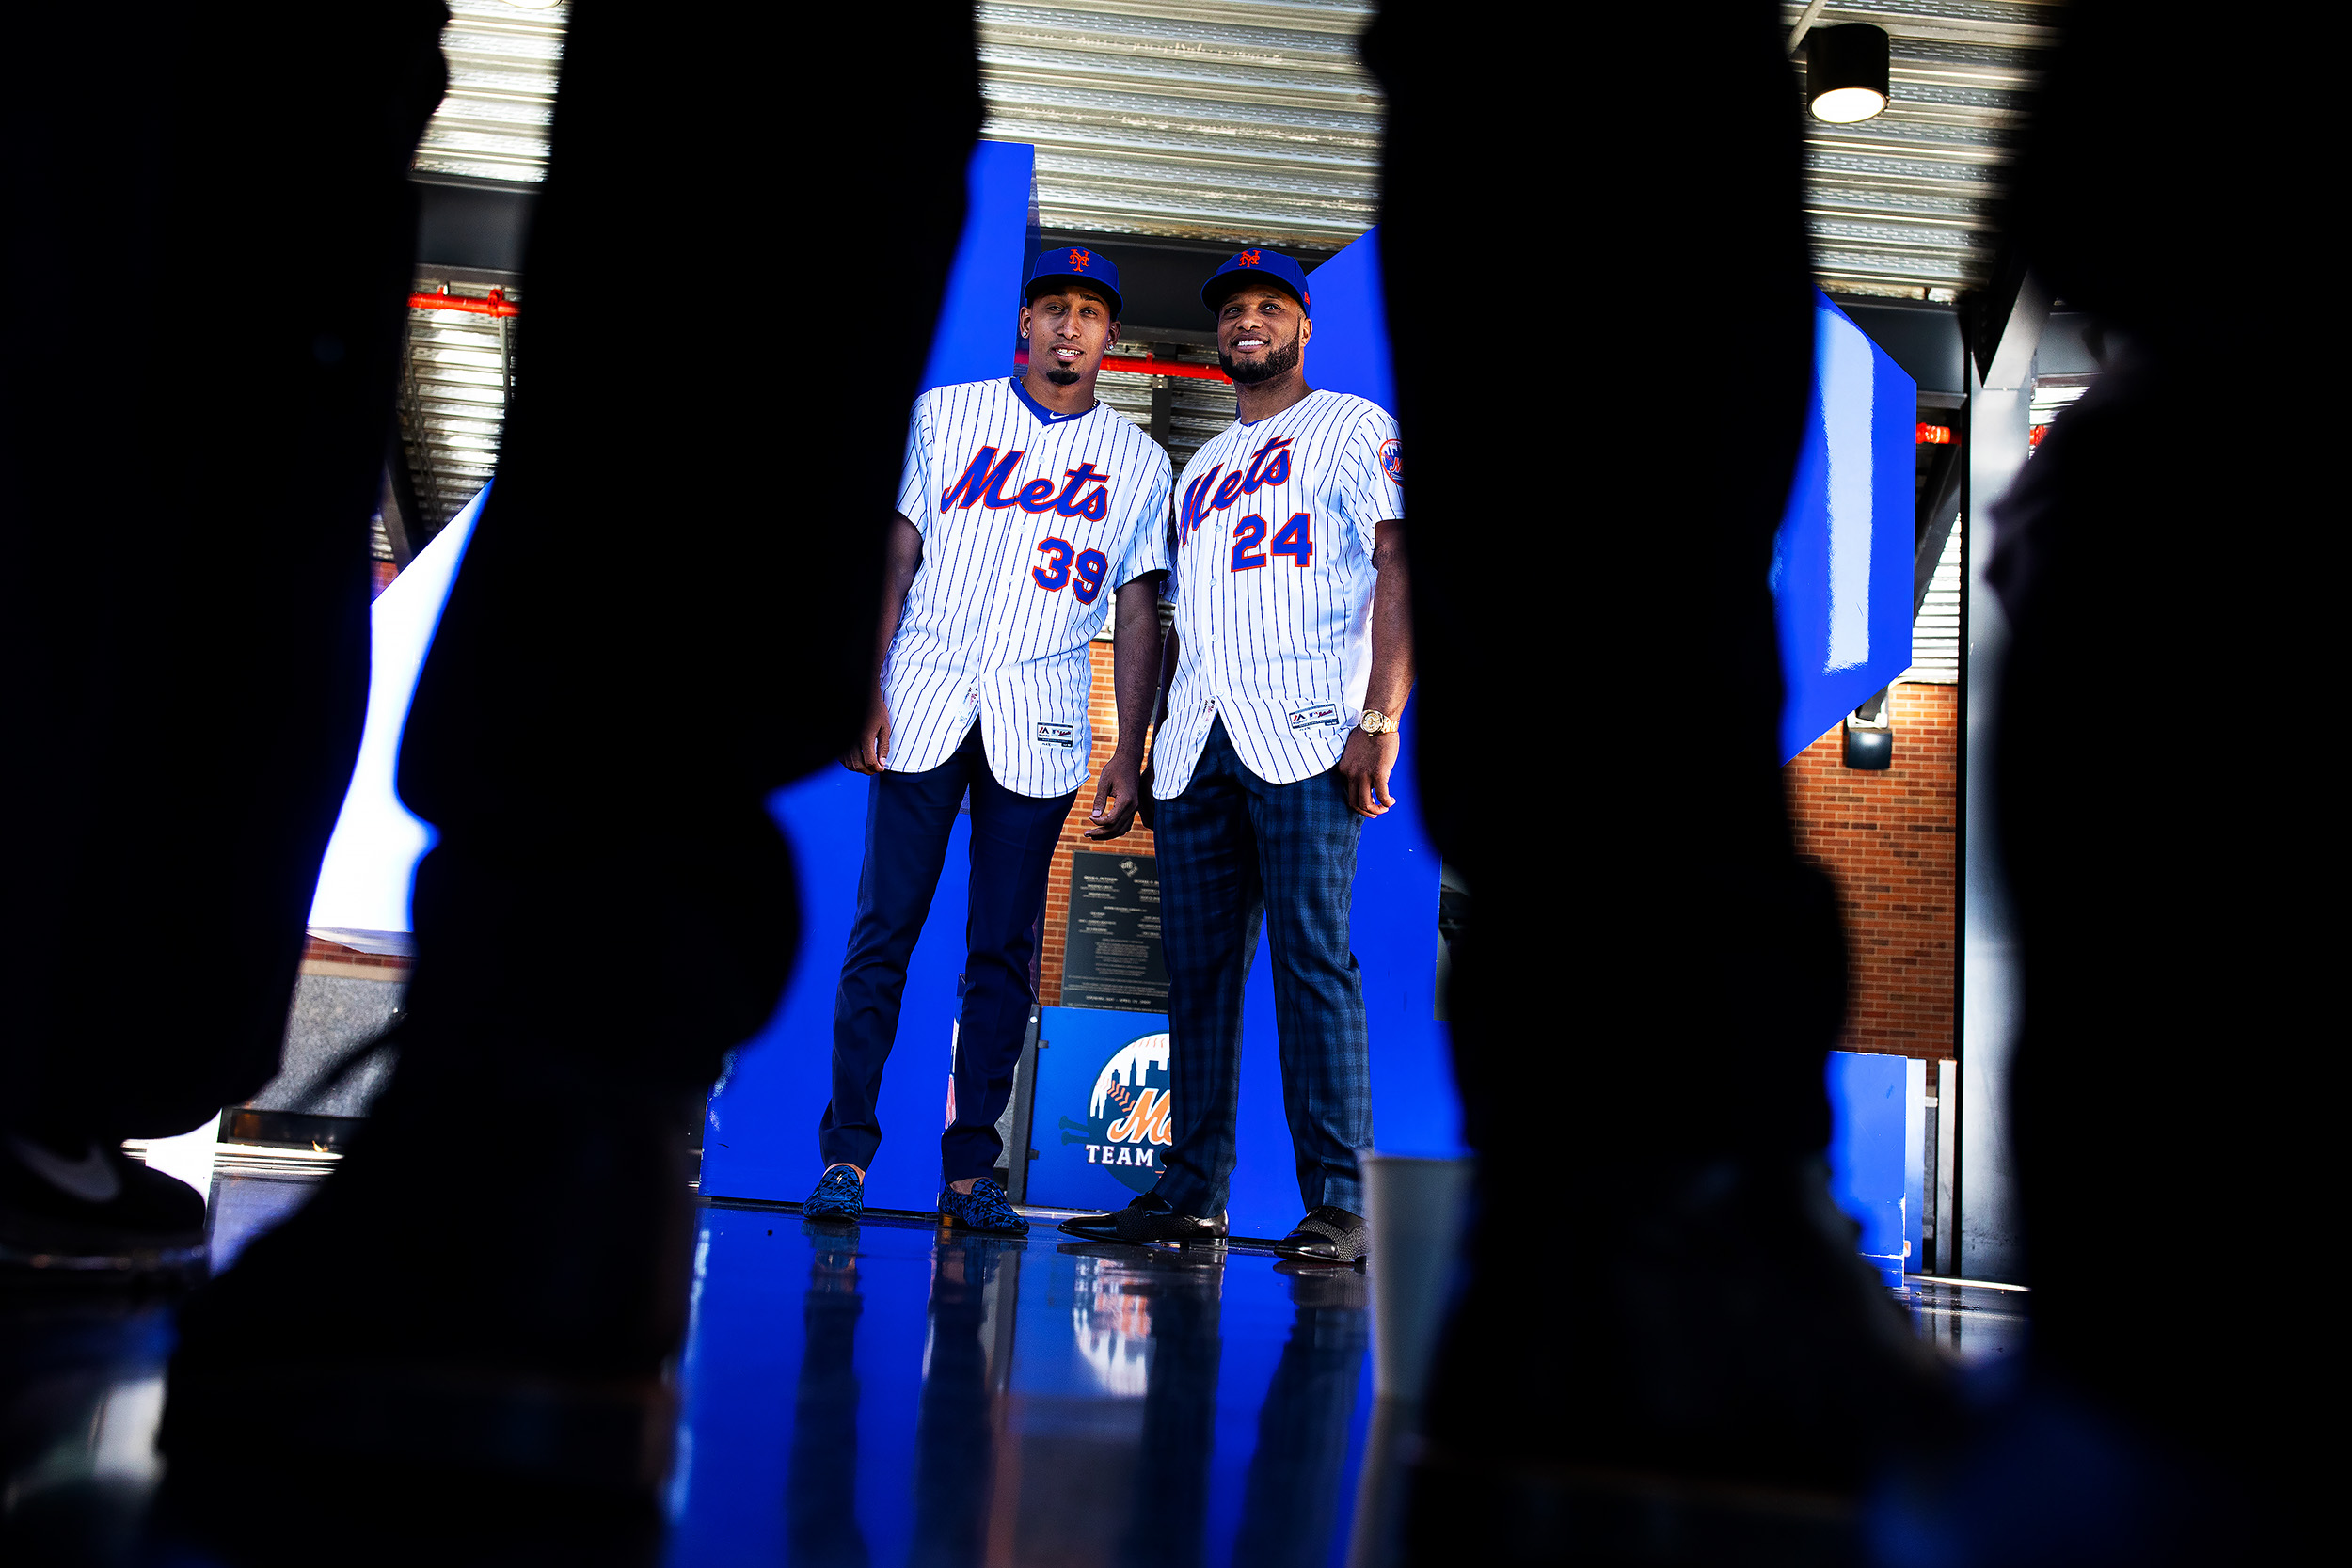 The New York Met Robinson Cano and Edwin Diaz pose in front of the iconic Jackie Robinson 42 statue at Citi Field. Flushing, New York.